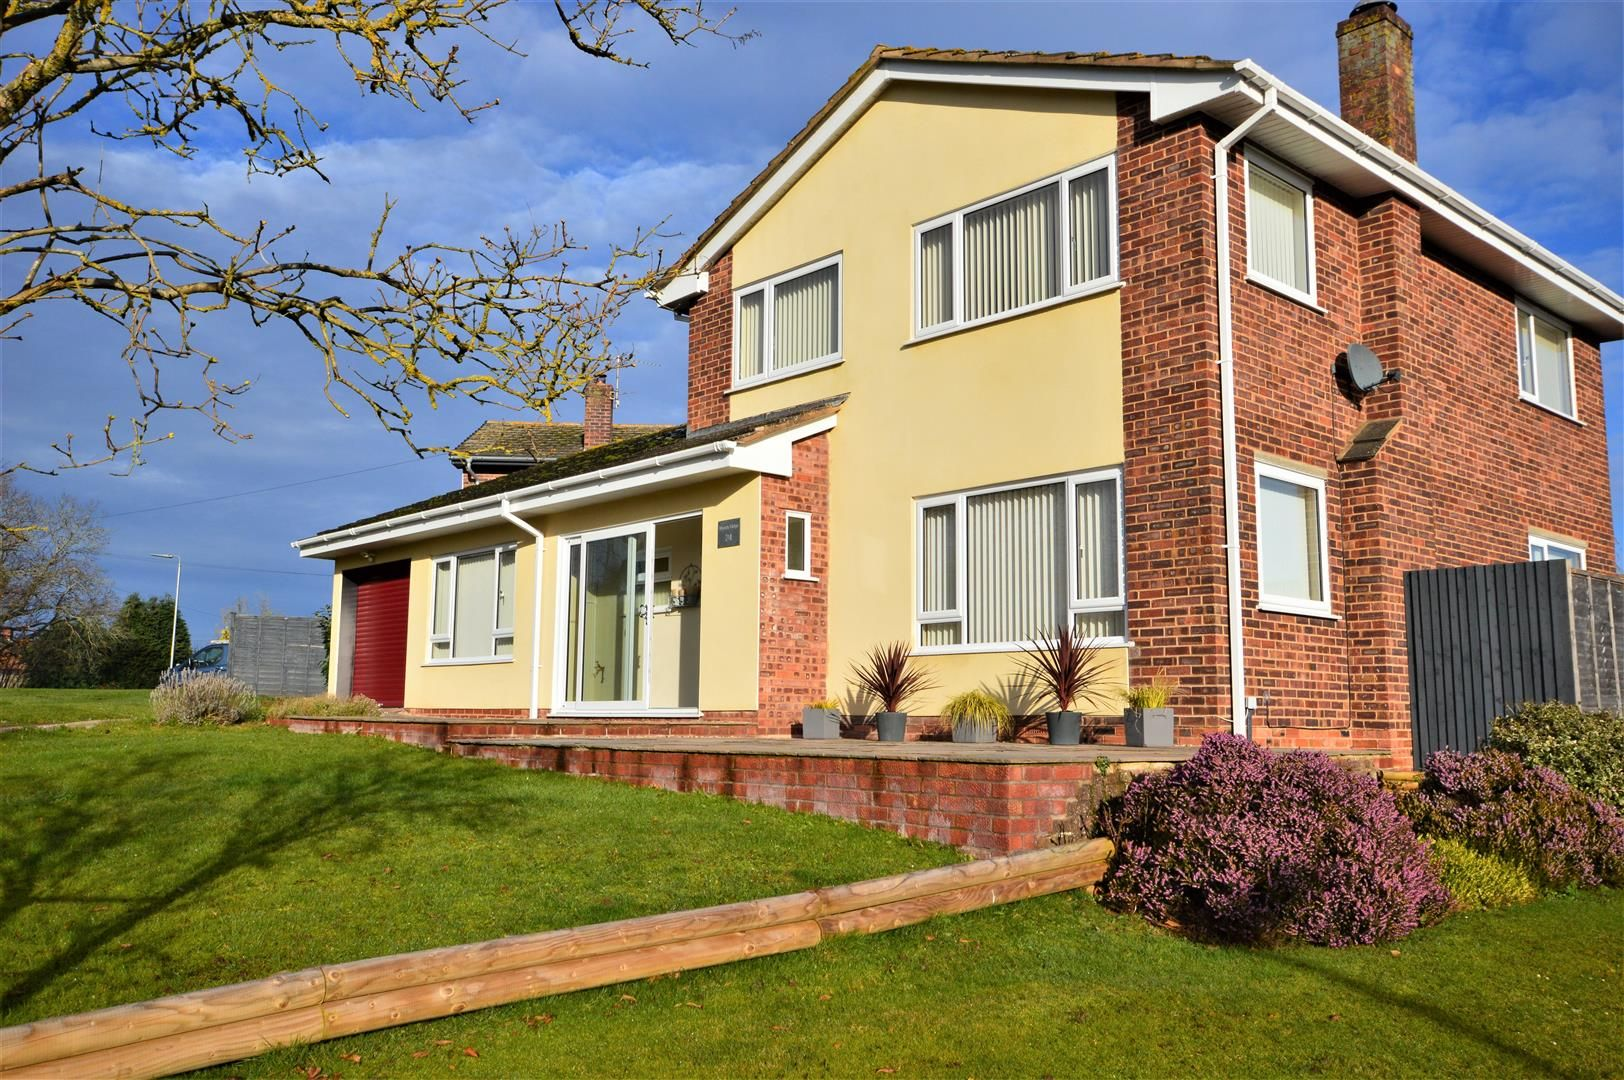 3 bed detached for sale in Kings Caple - Property Image 1